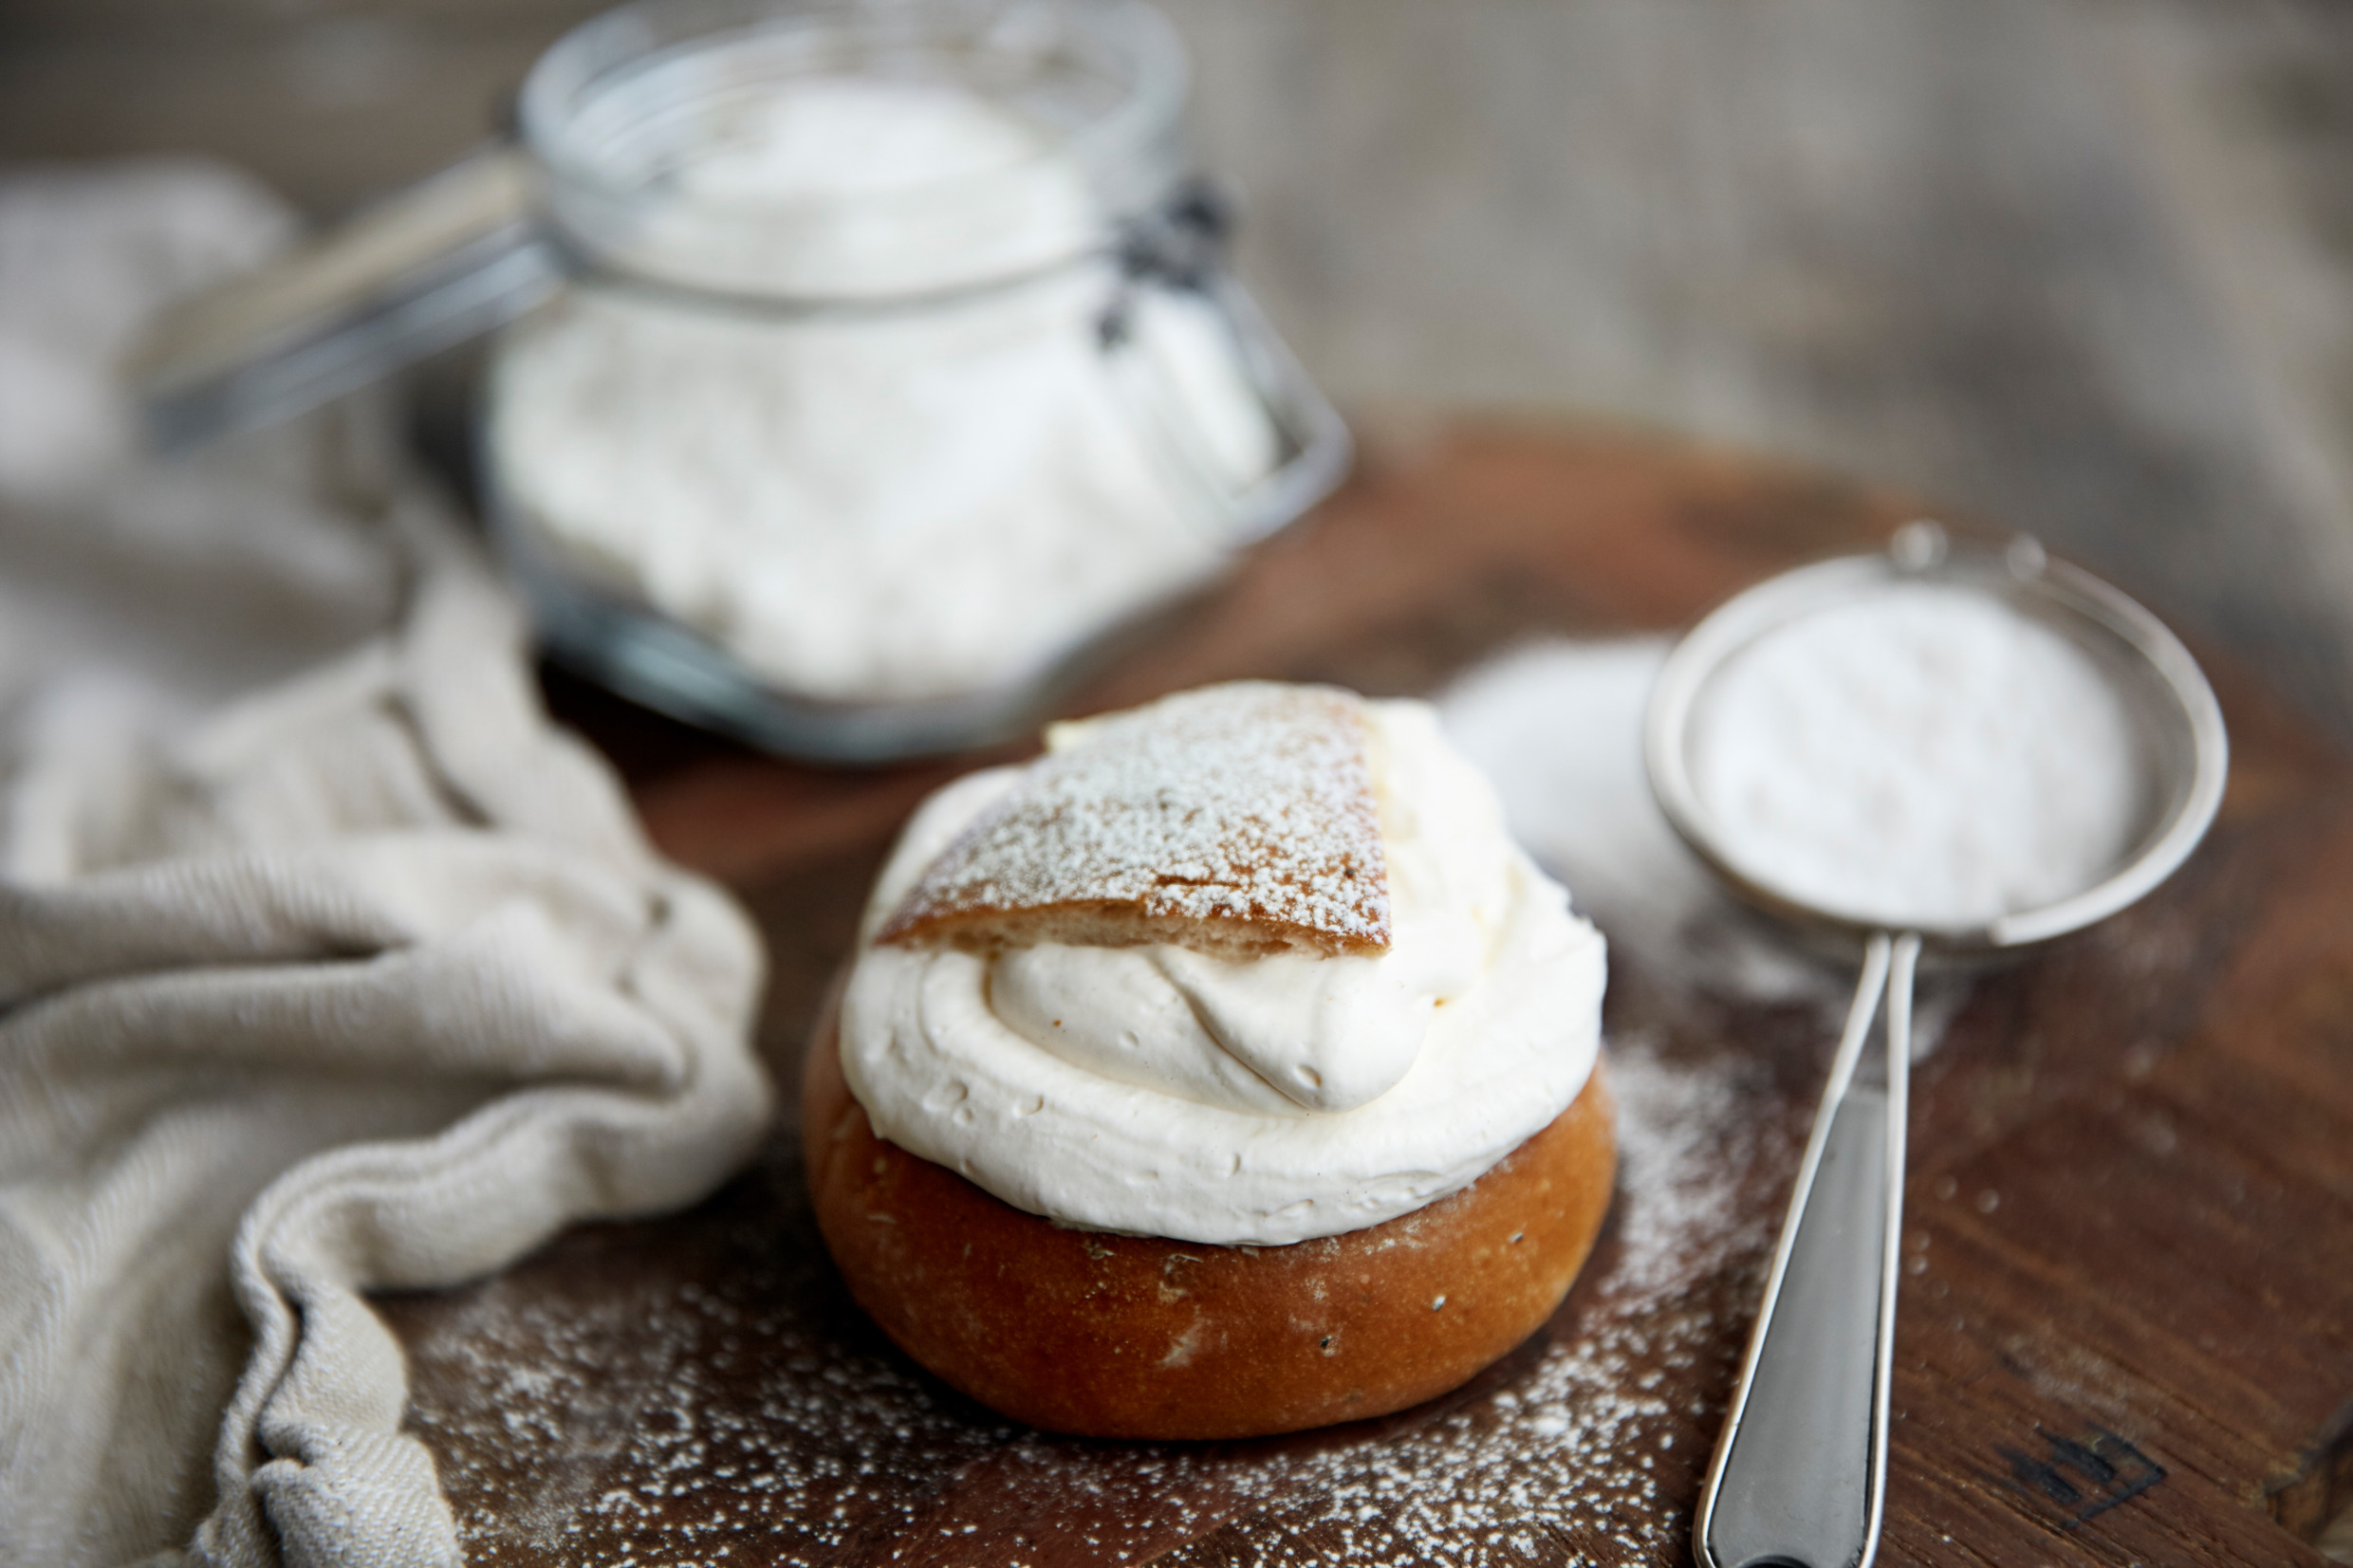 Fatten Up Your Fettisdagen With Semla